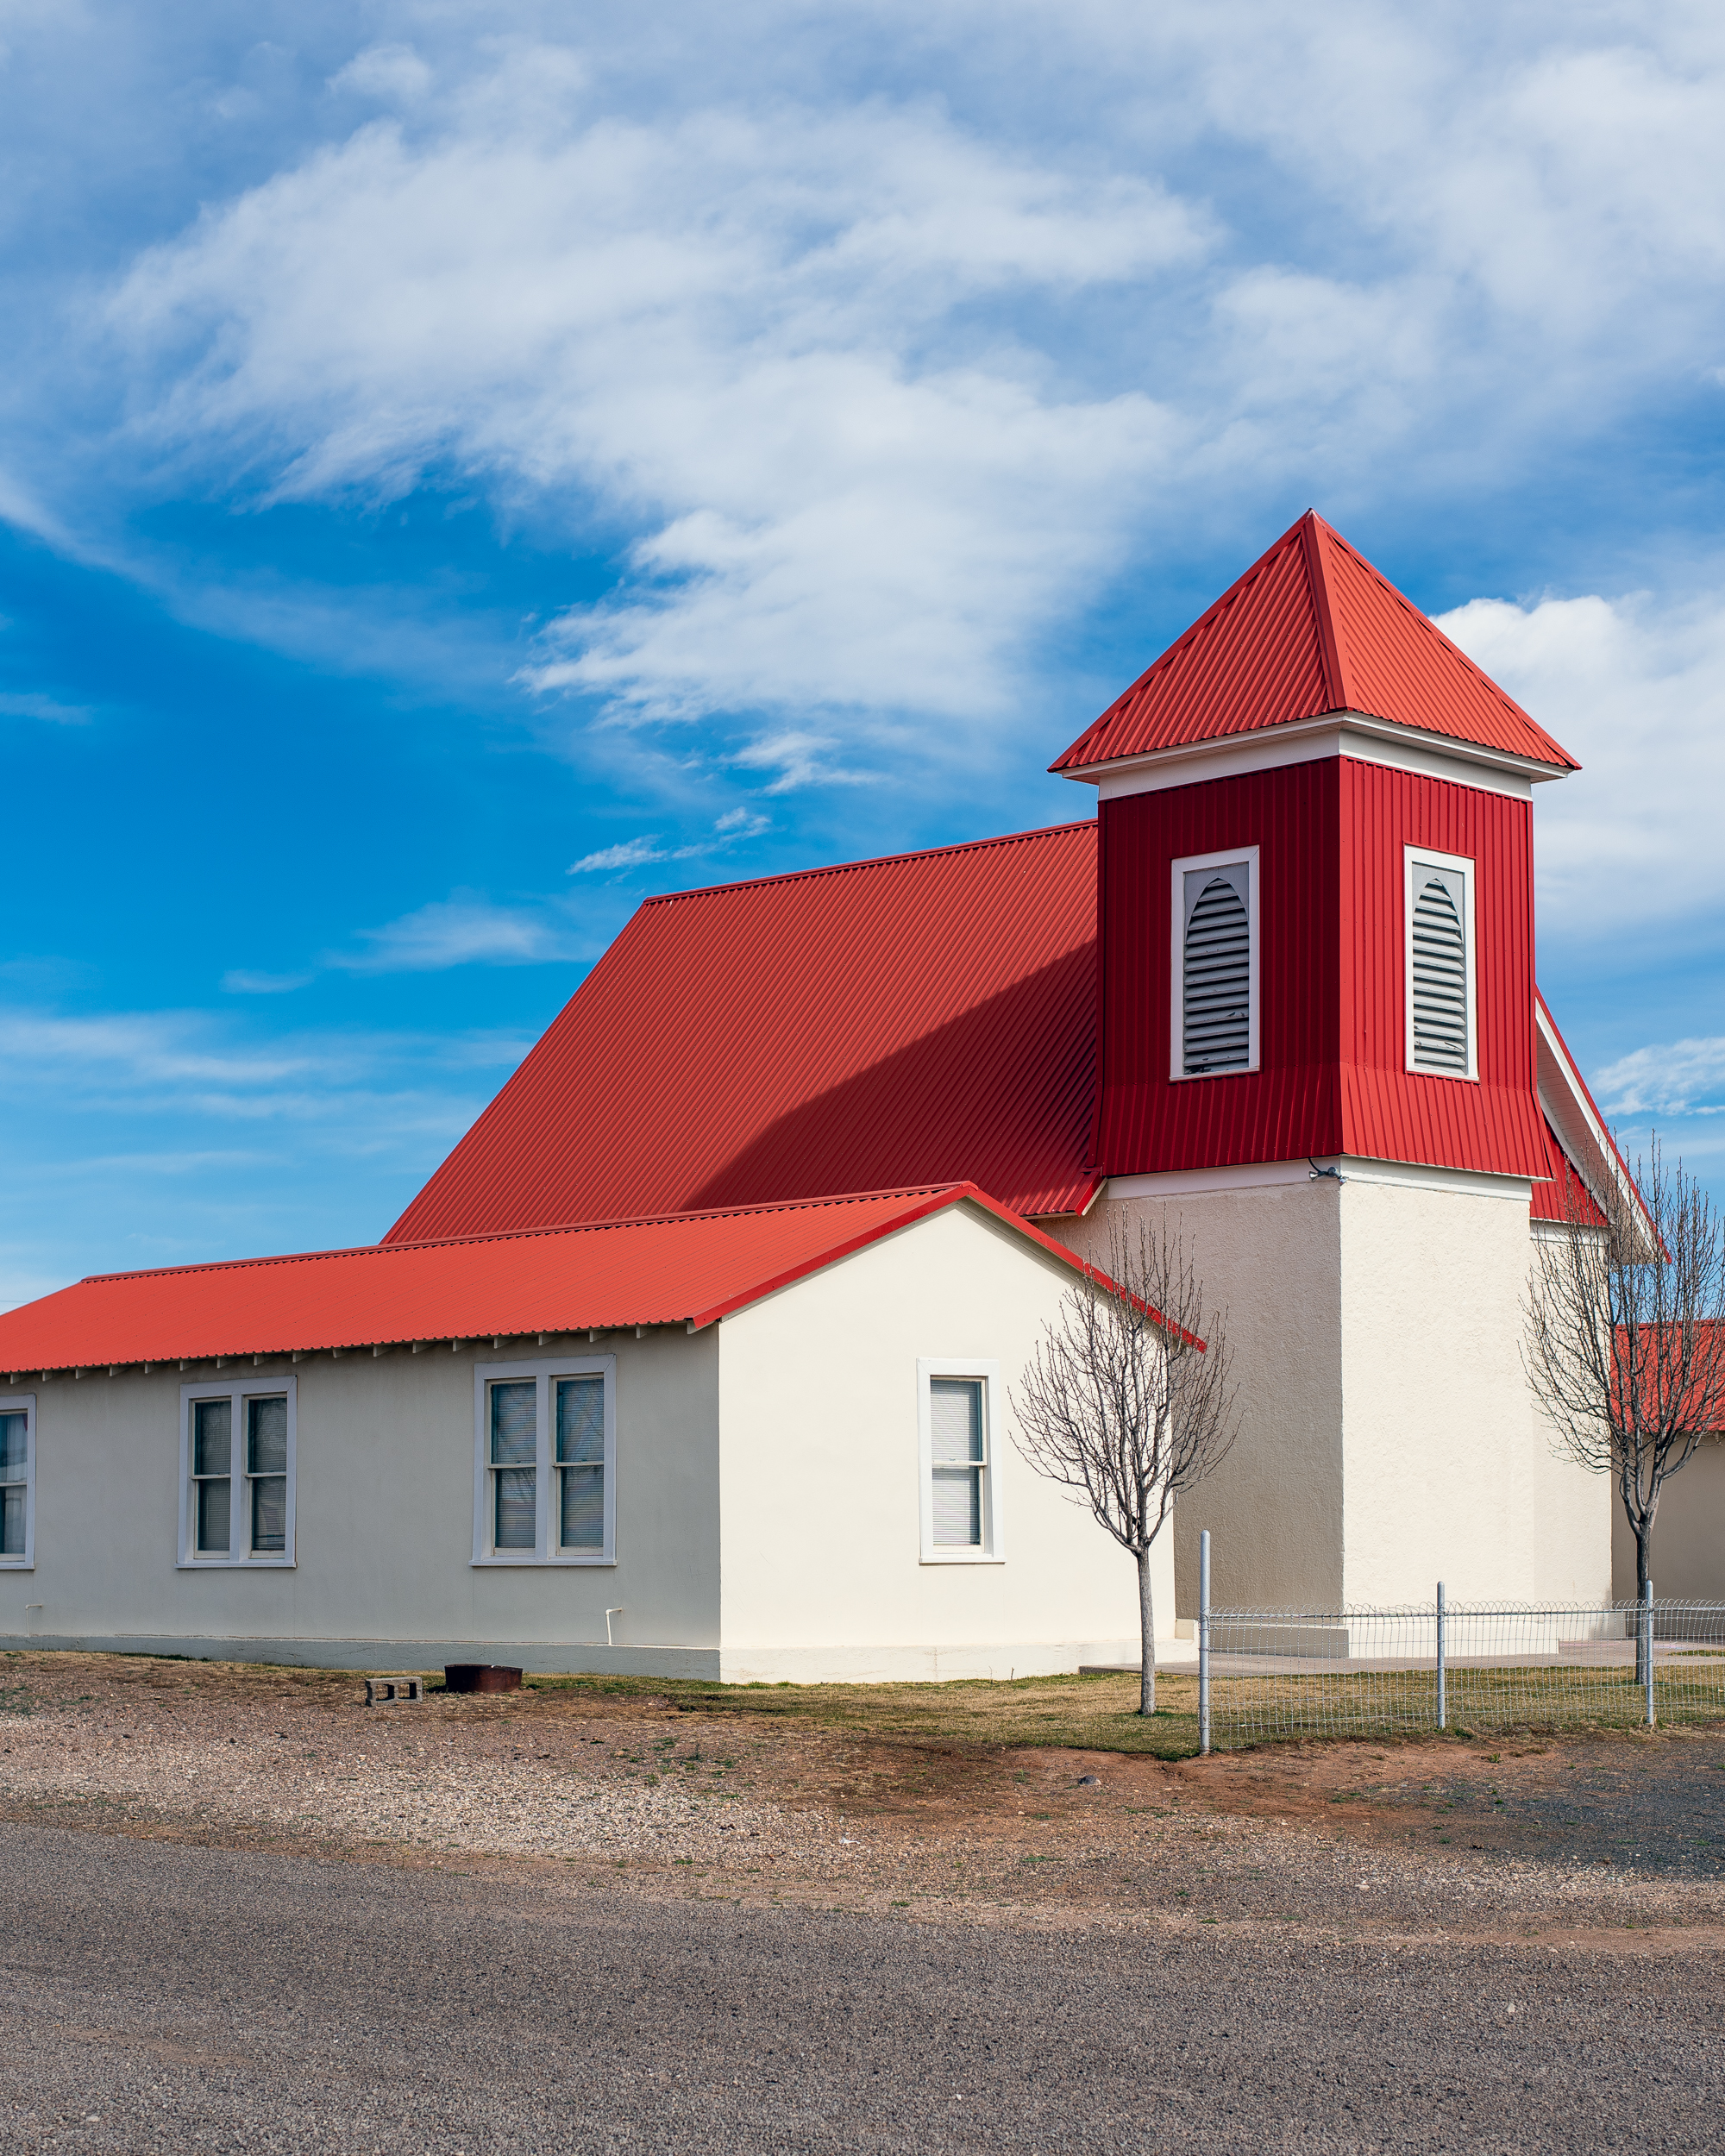 valentine community church, valentine, texas